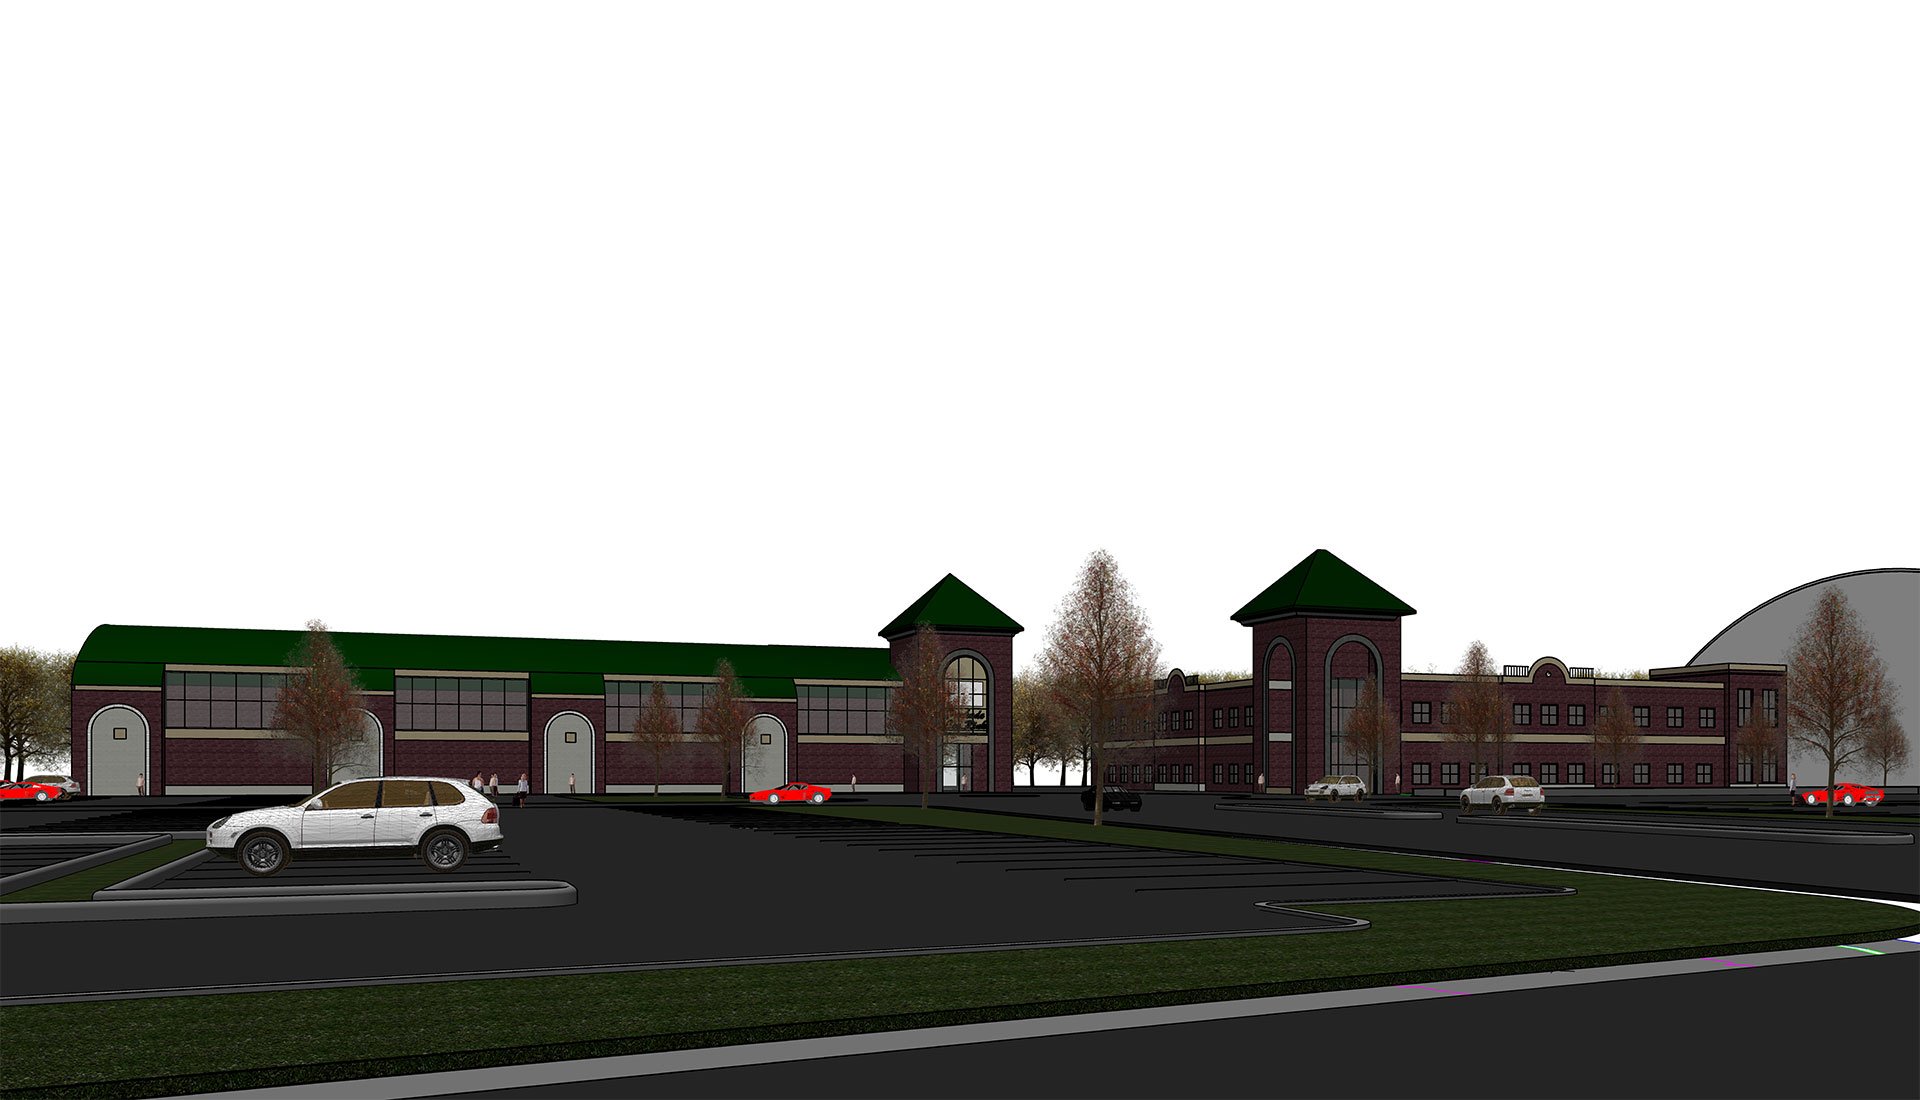 Commercial-Project-Revit-architectural-Modeling-Manchester-RTC-Parkade-CT